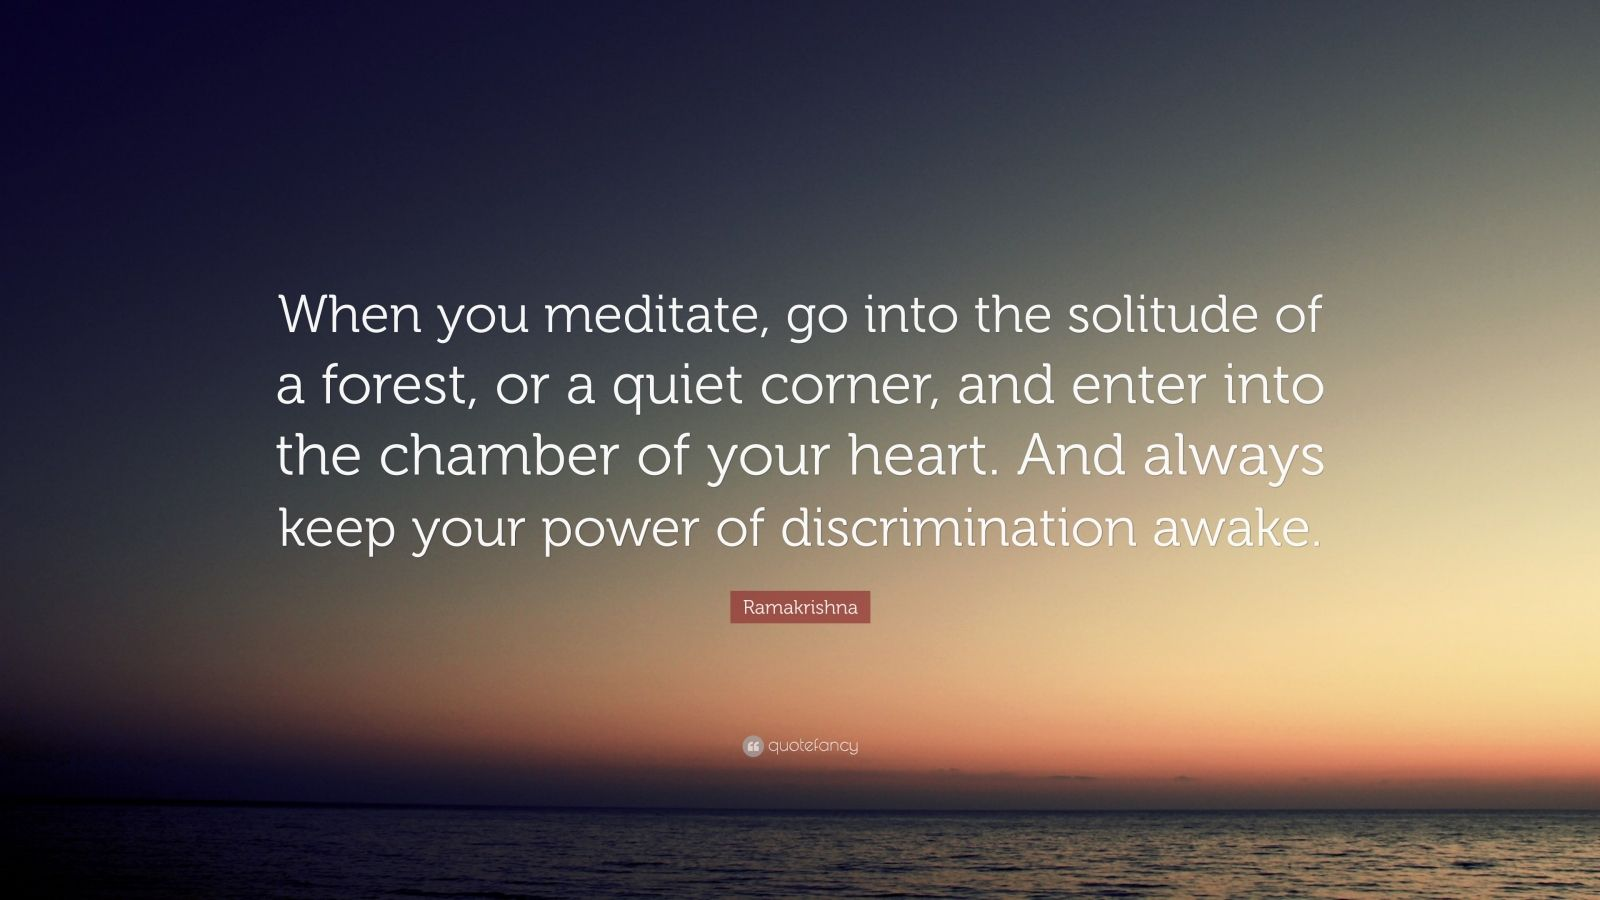 """Ramakrishna Quote: """"When you meditate, go into the solitude of a forest, or a quiet corner, and enter into the chamber of your heart. And always keep your power of discrimination awake."""""""